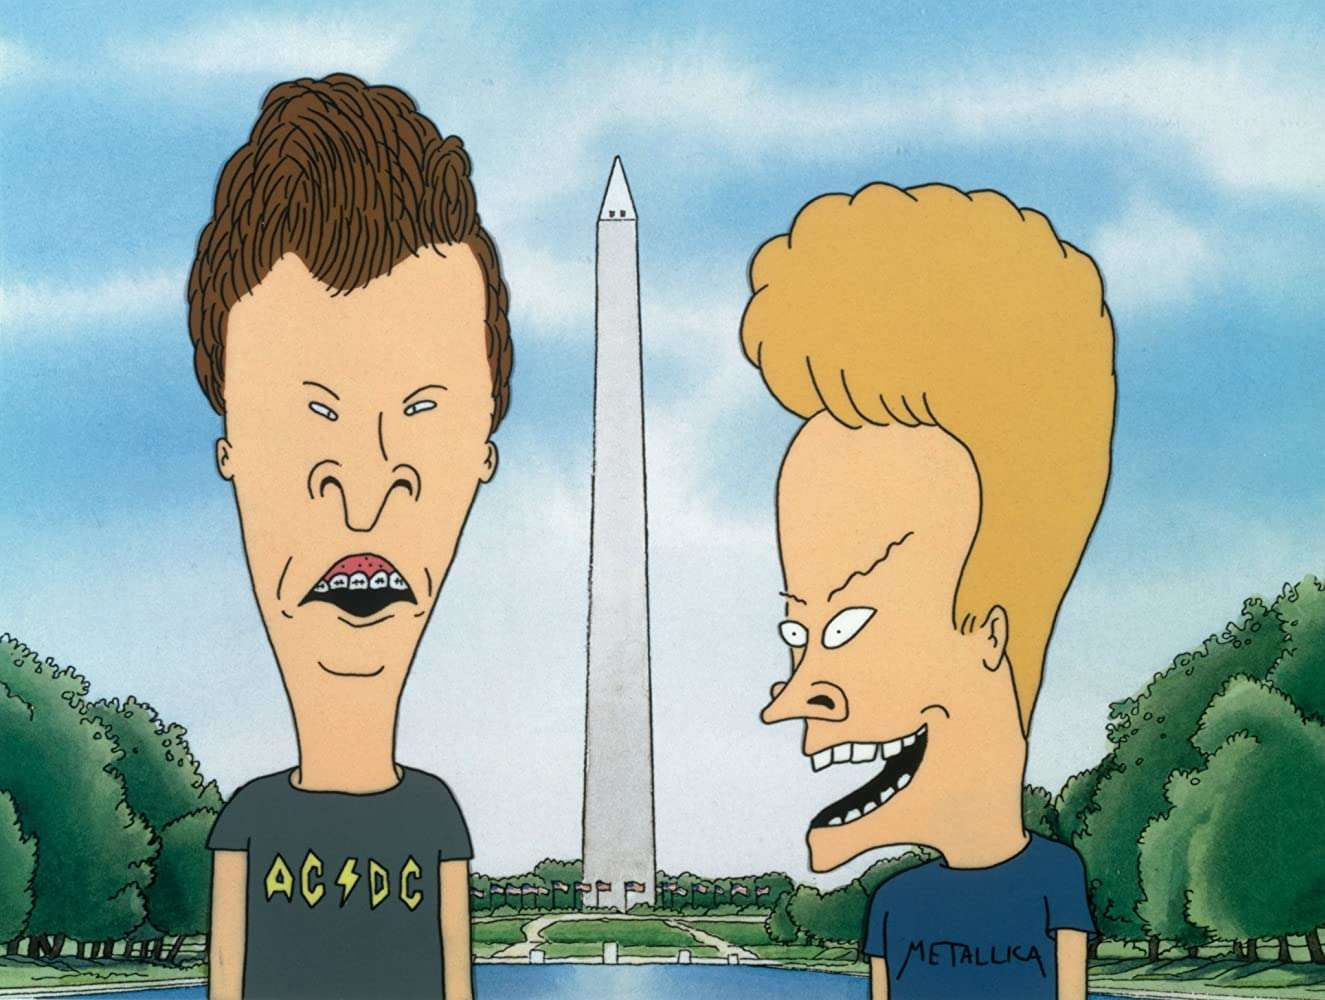 Cornholio's back! Comedy Central orders Beavis and Butt-Head reboot from Mike Judge